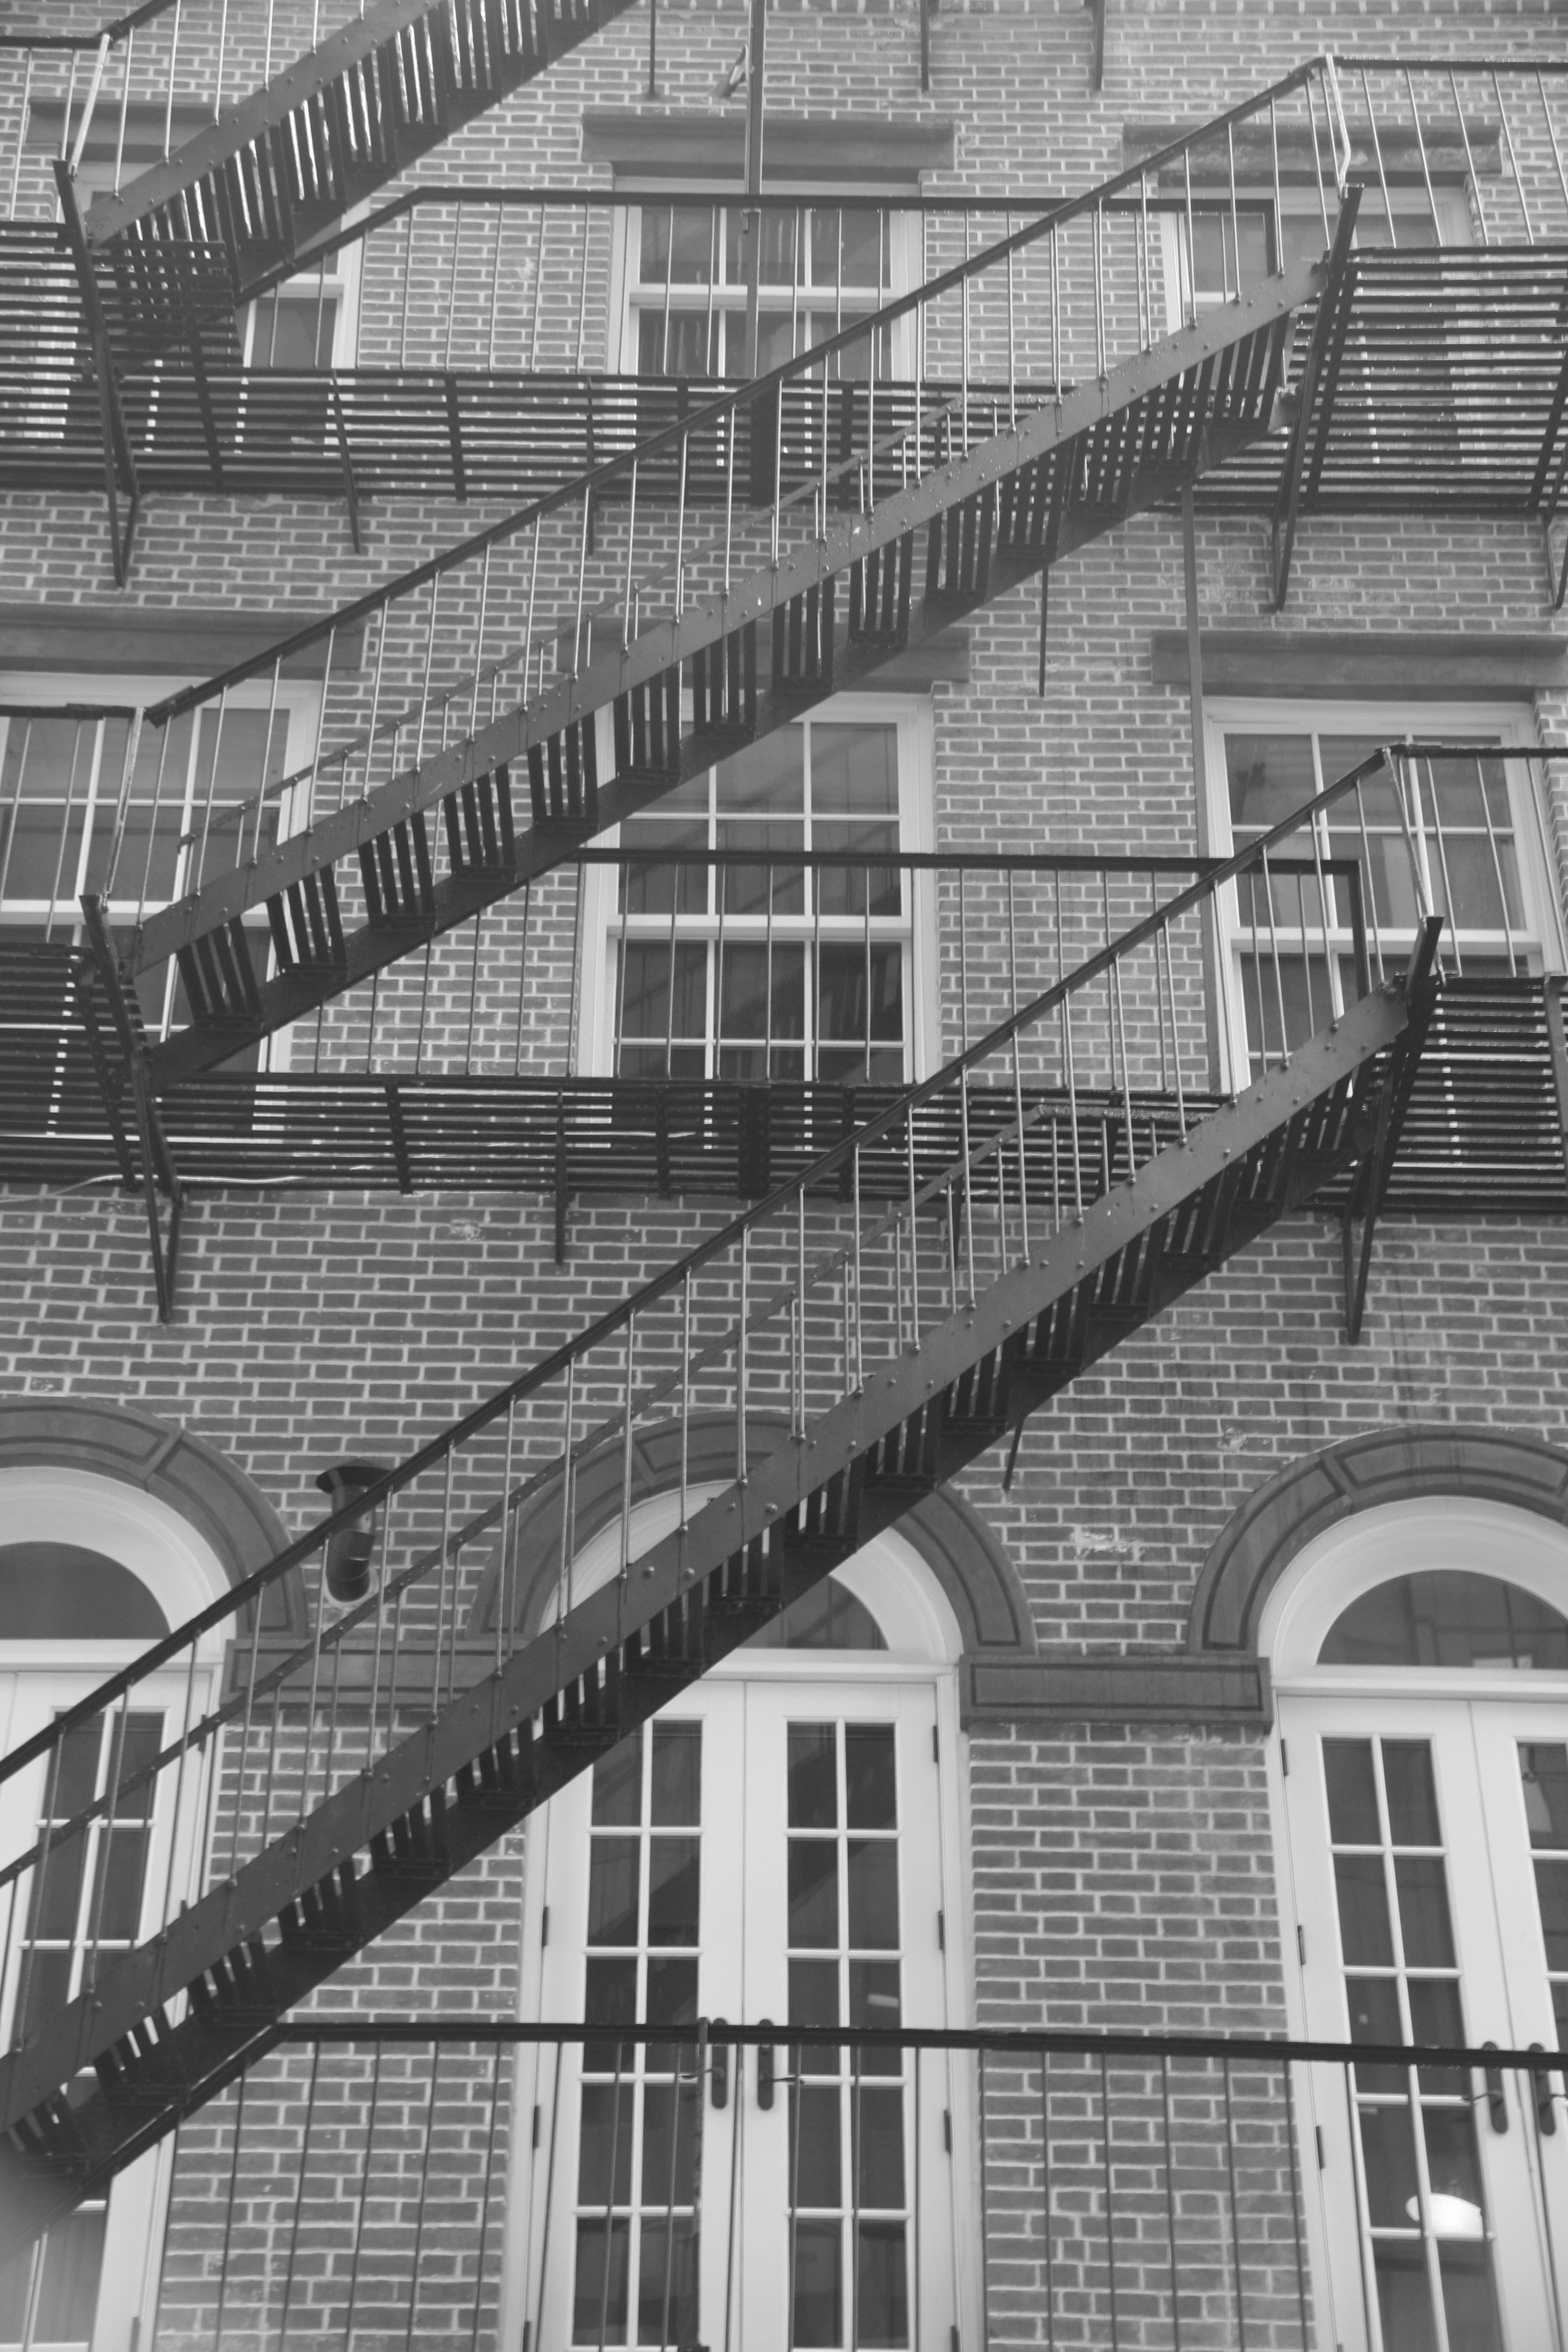 A black and white photo of a tenement building with crisscrossing fire escapes in New York City